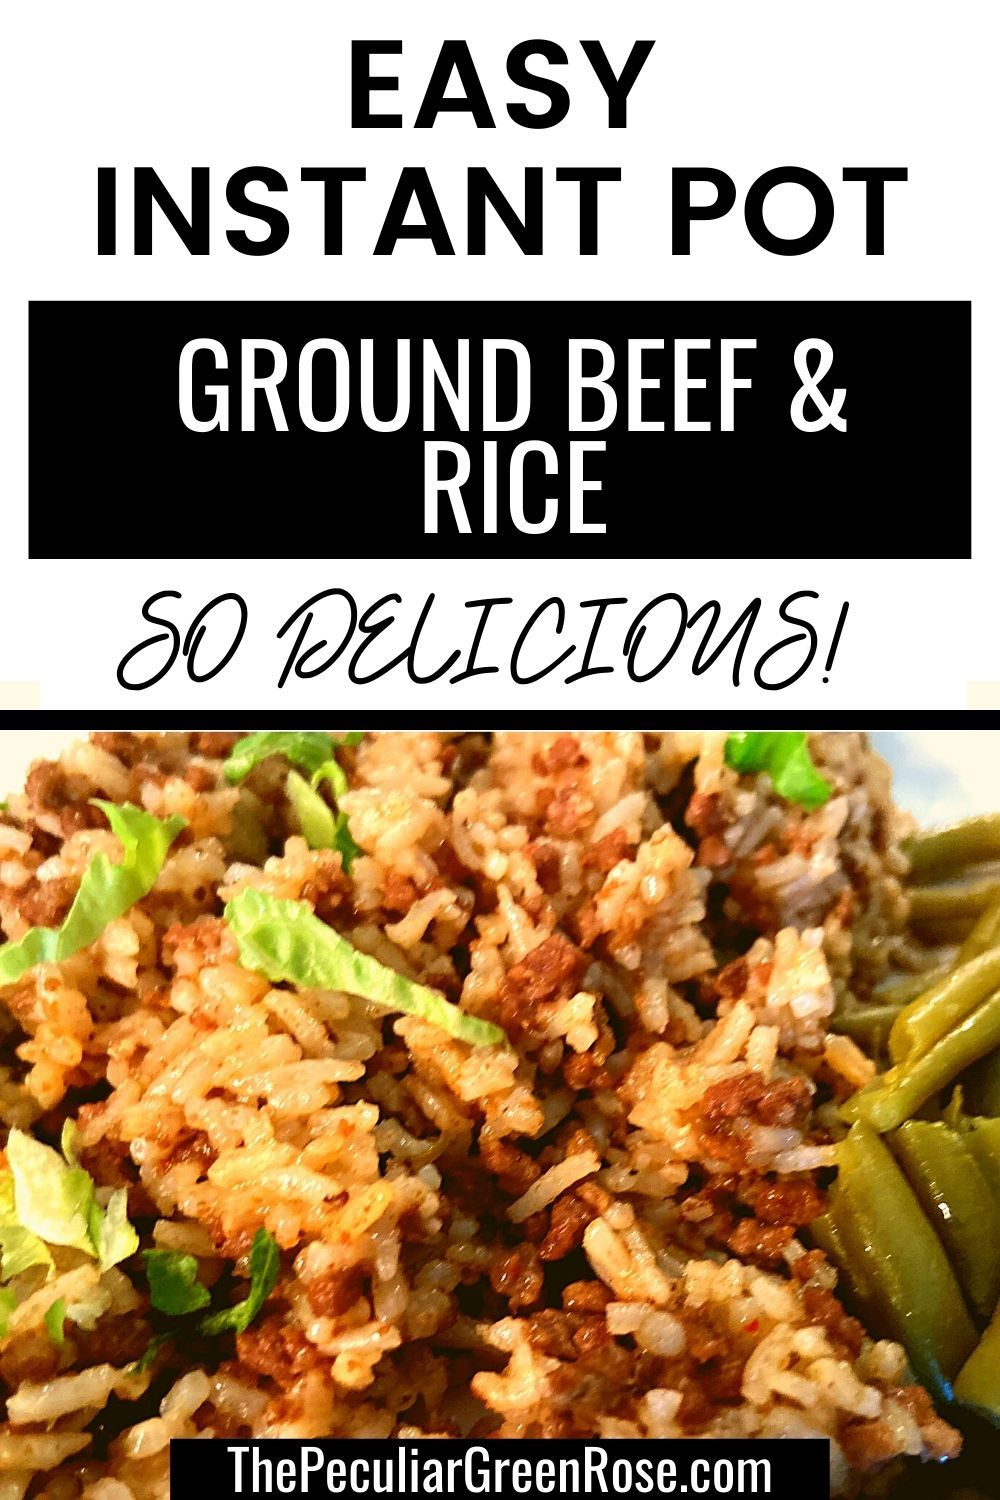 Instant Pot Ground Beef And Rice The Peculiar Green Rose Recipe In 2020 Easy Instant Pot Recipes Inexpensive Dinner Recipes Beef And Rice